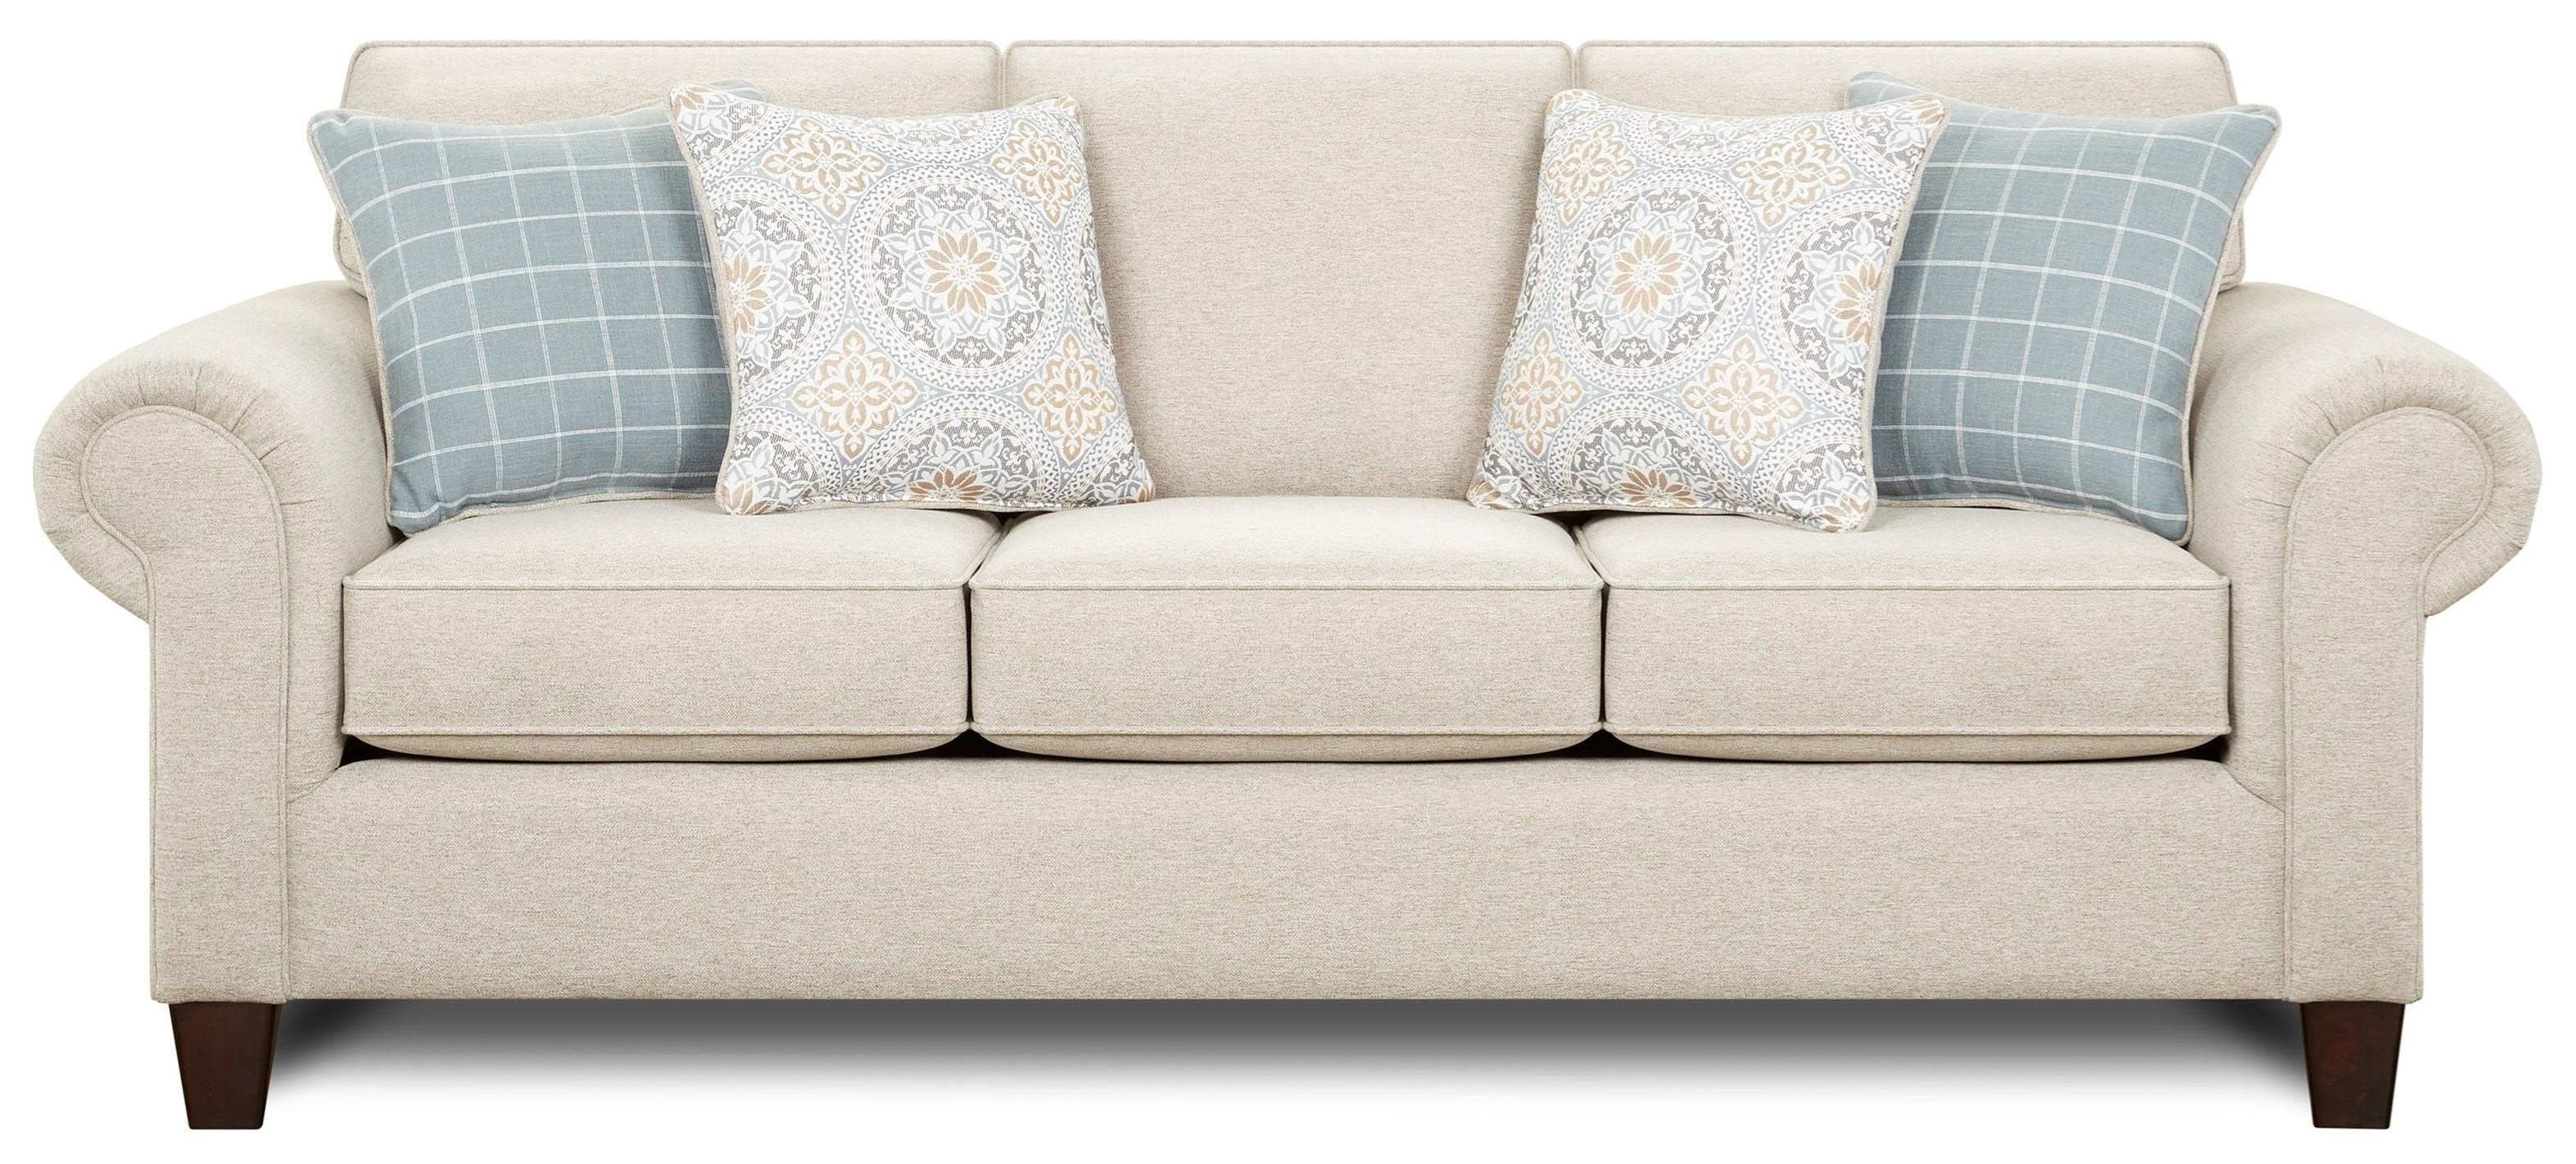 3100 Sleeper Sofa by Fusion Furniture at Prime Brothers Furniture